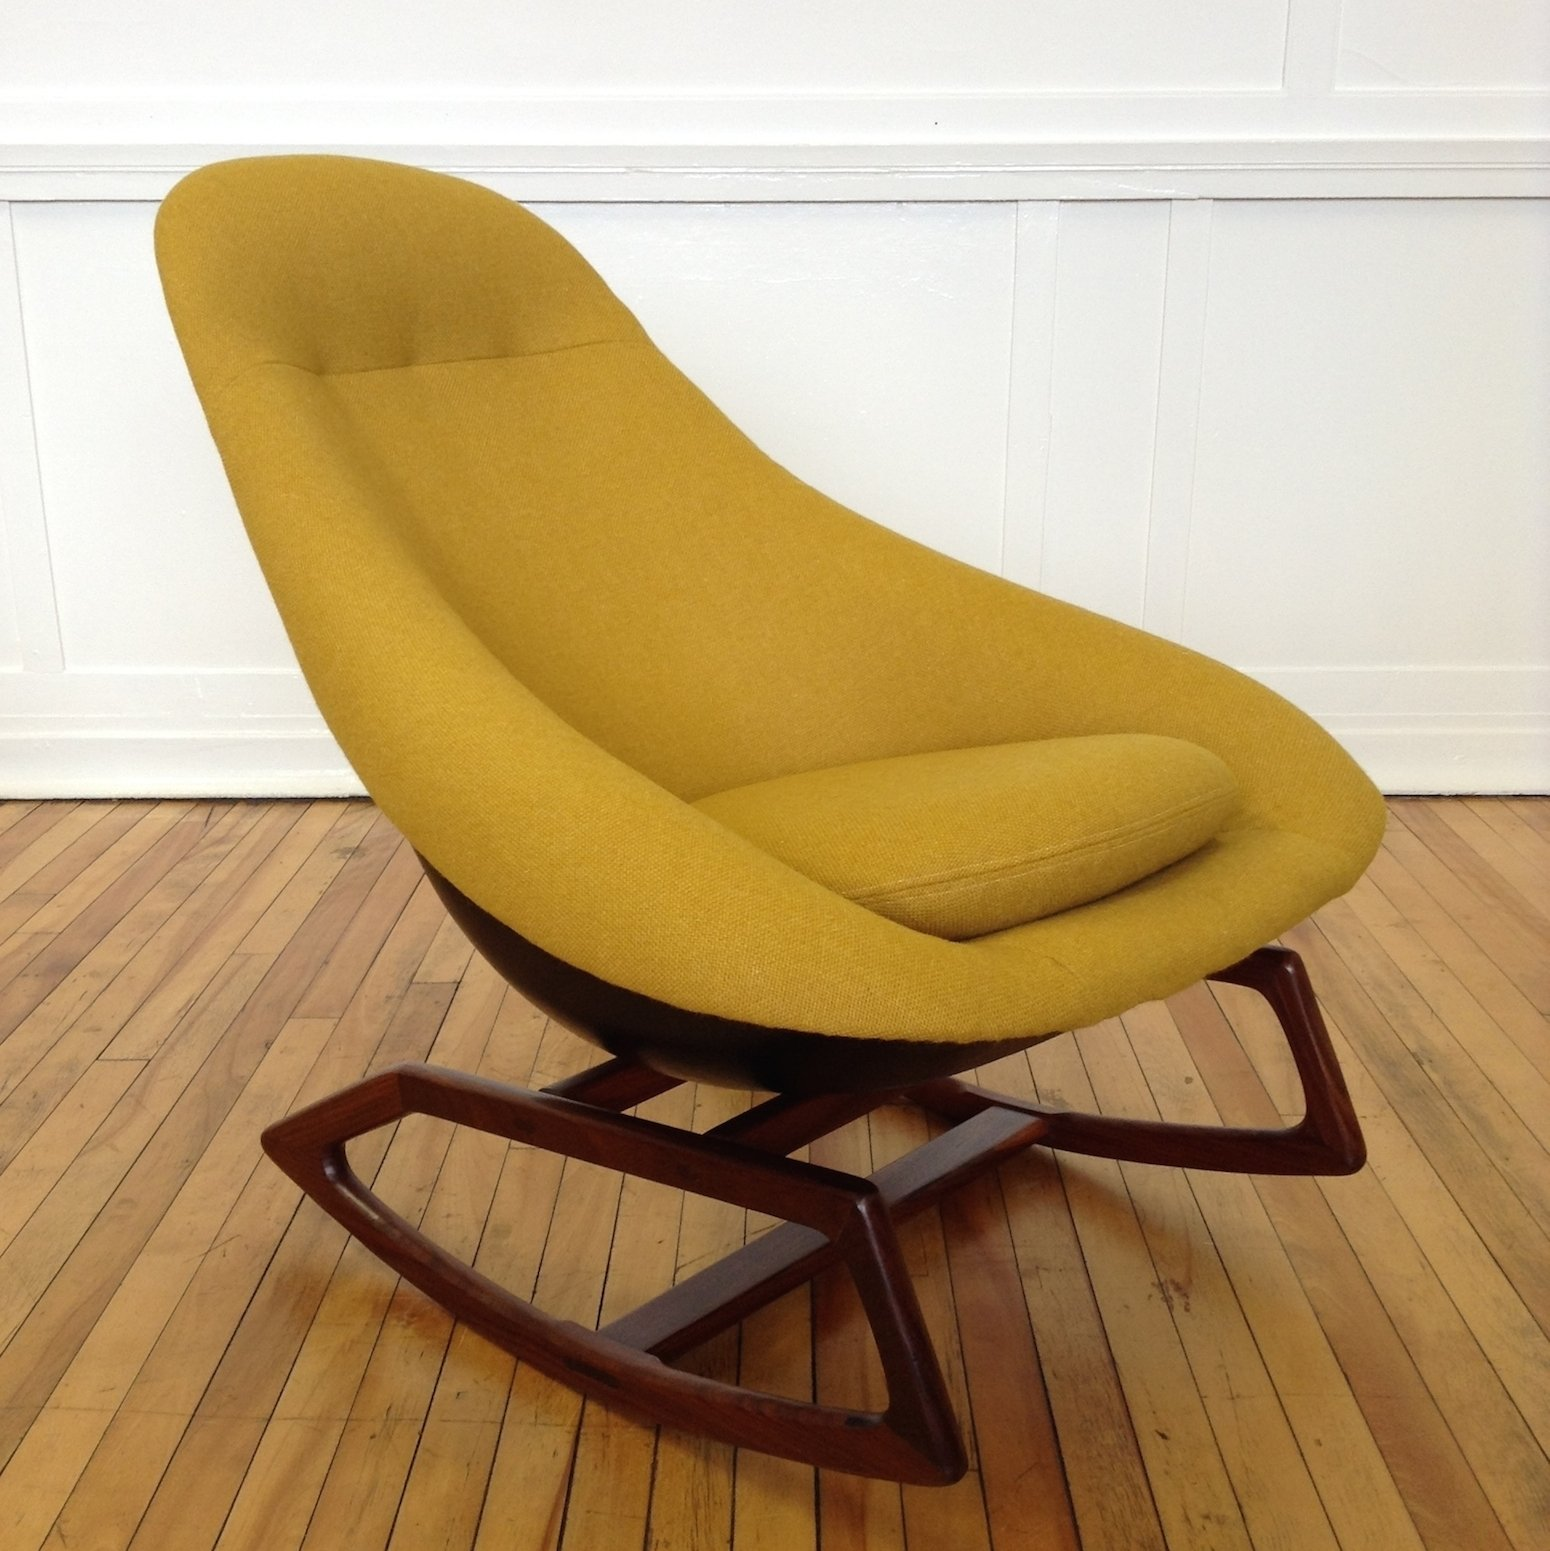 chair chairs lounge armchair contemporary red buy furniture sale century rocking modern mid yellow for